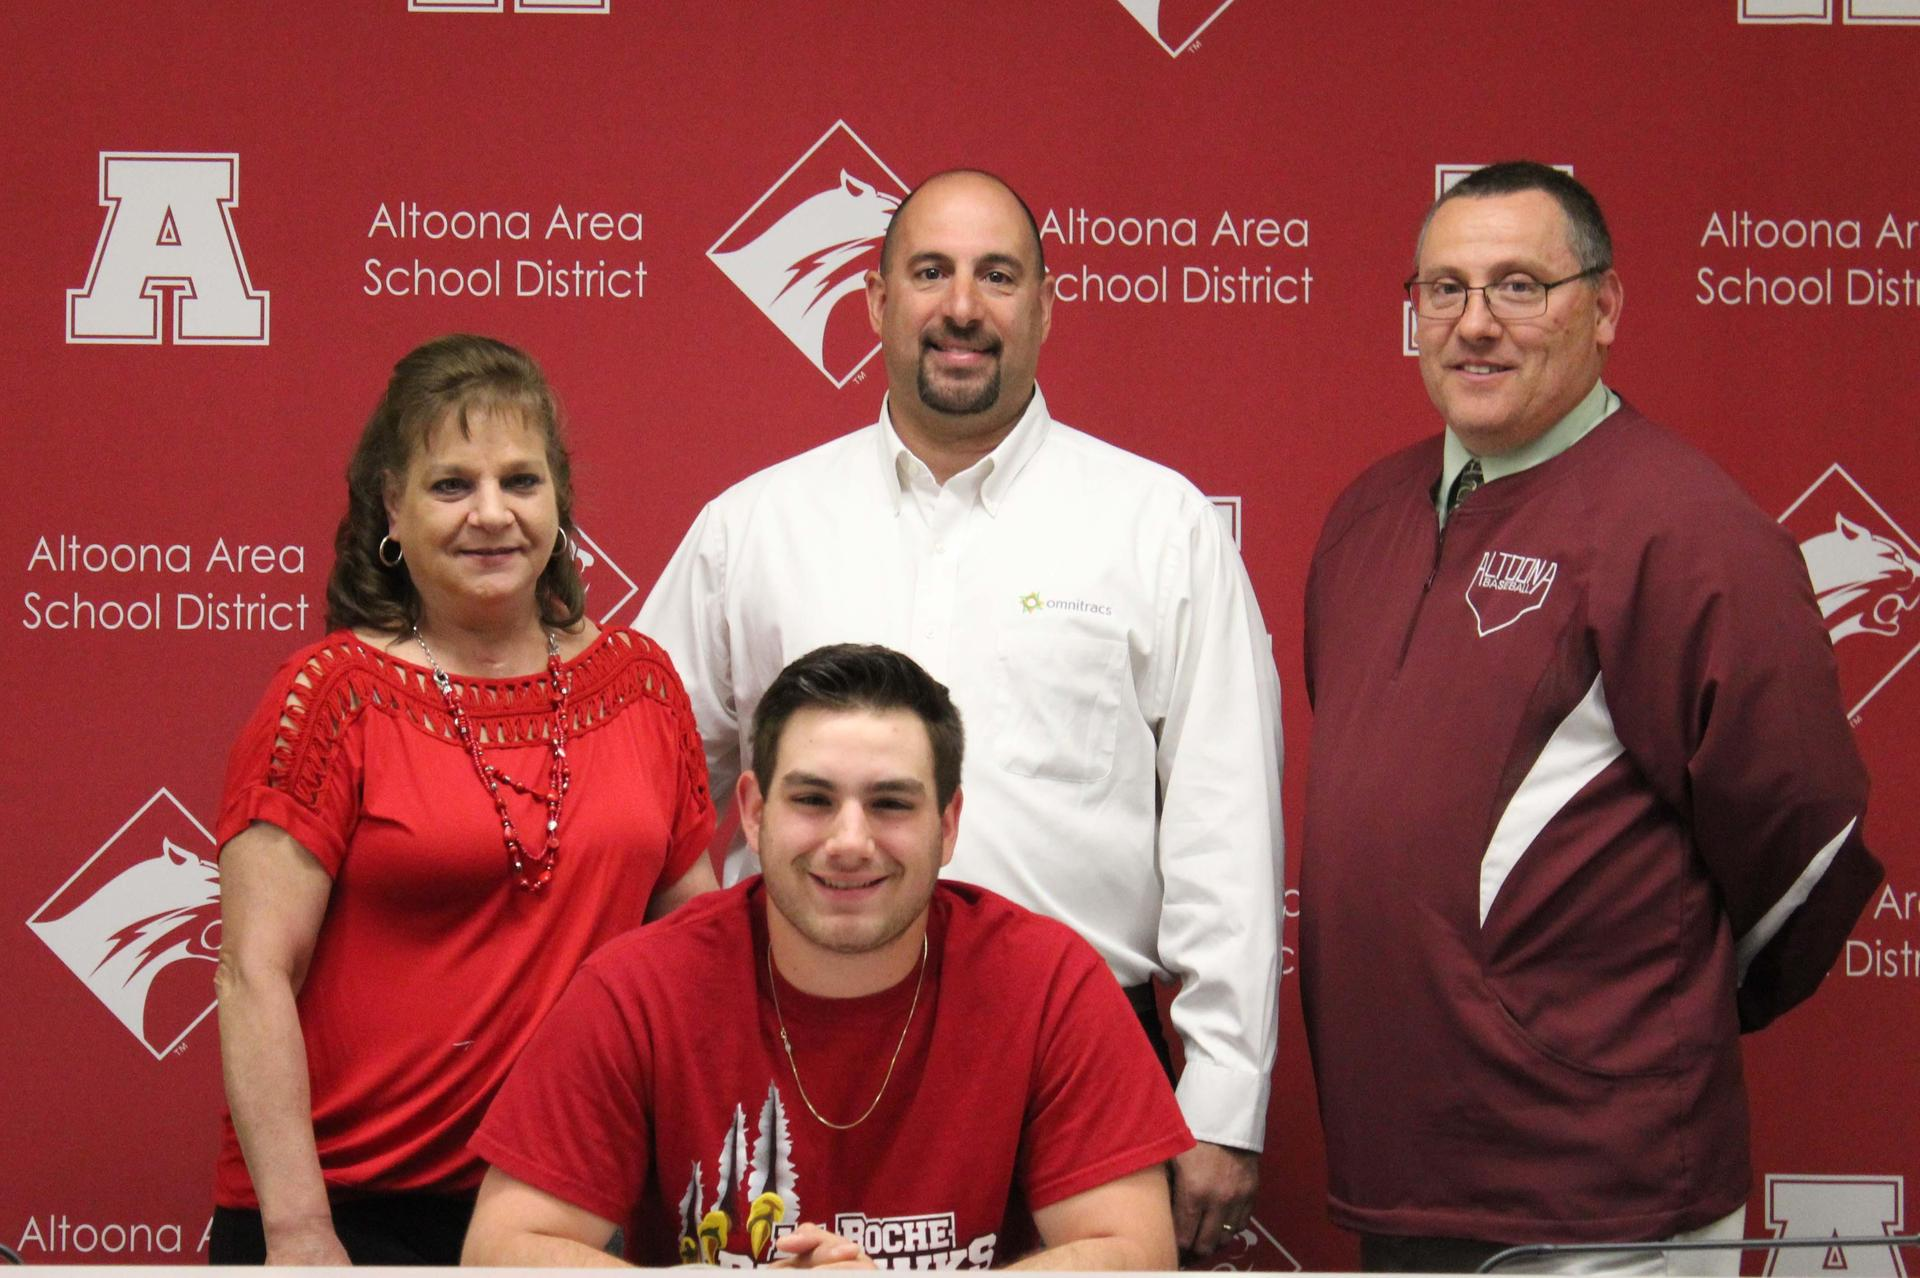 Adam Sinisi, Caoch Smith and Family